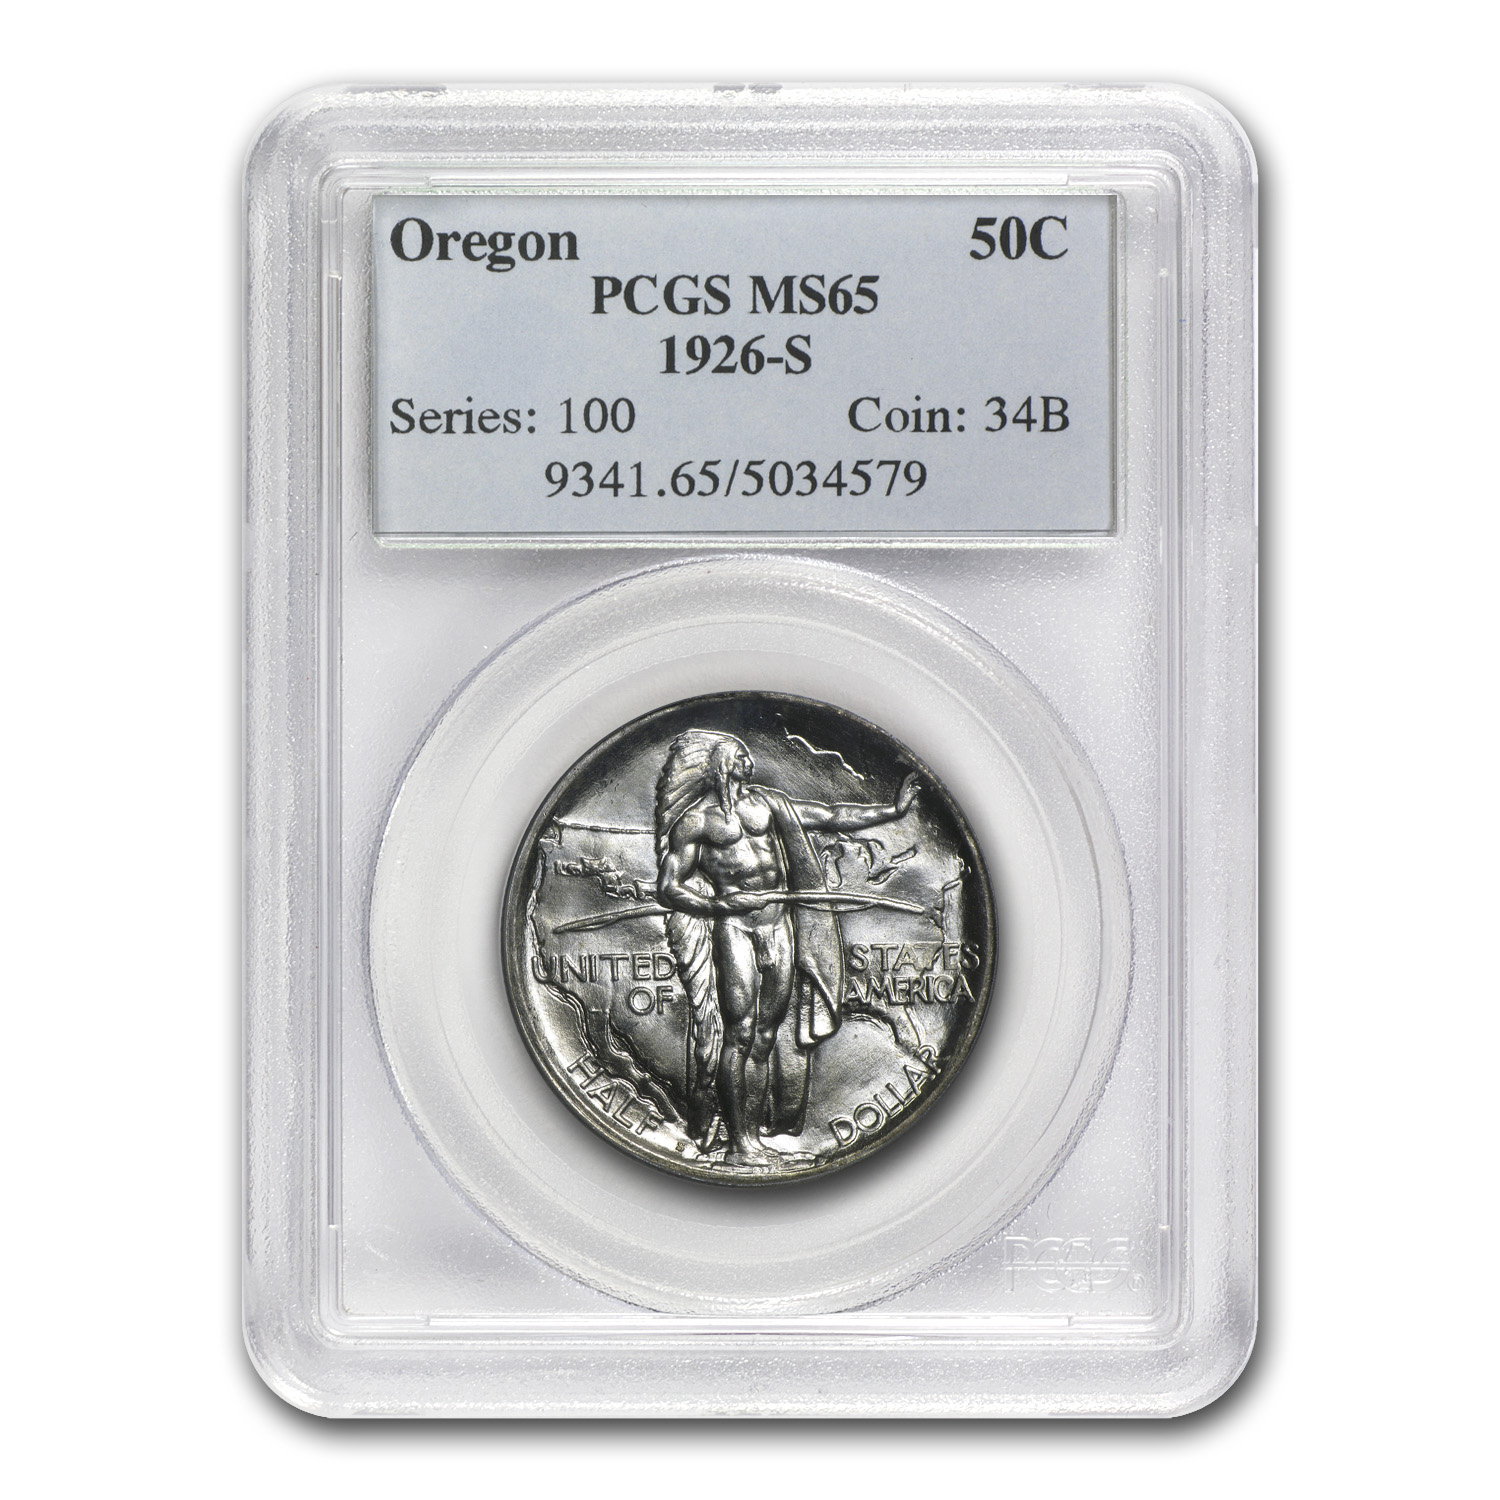 1926-S Oregon Commemorative MS-65 PCGS